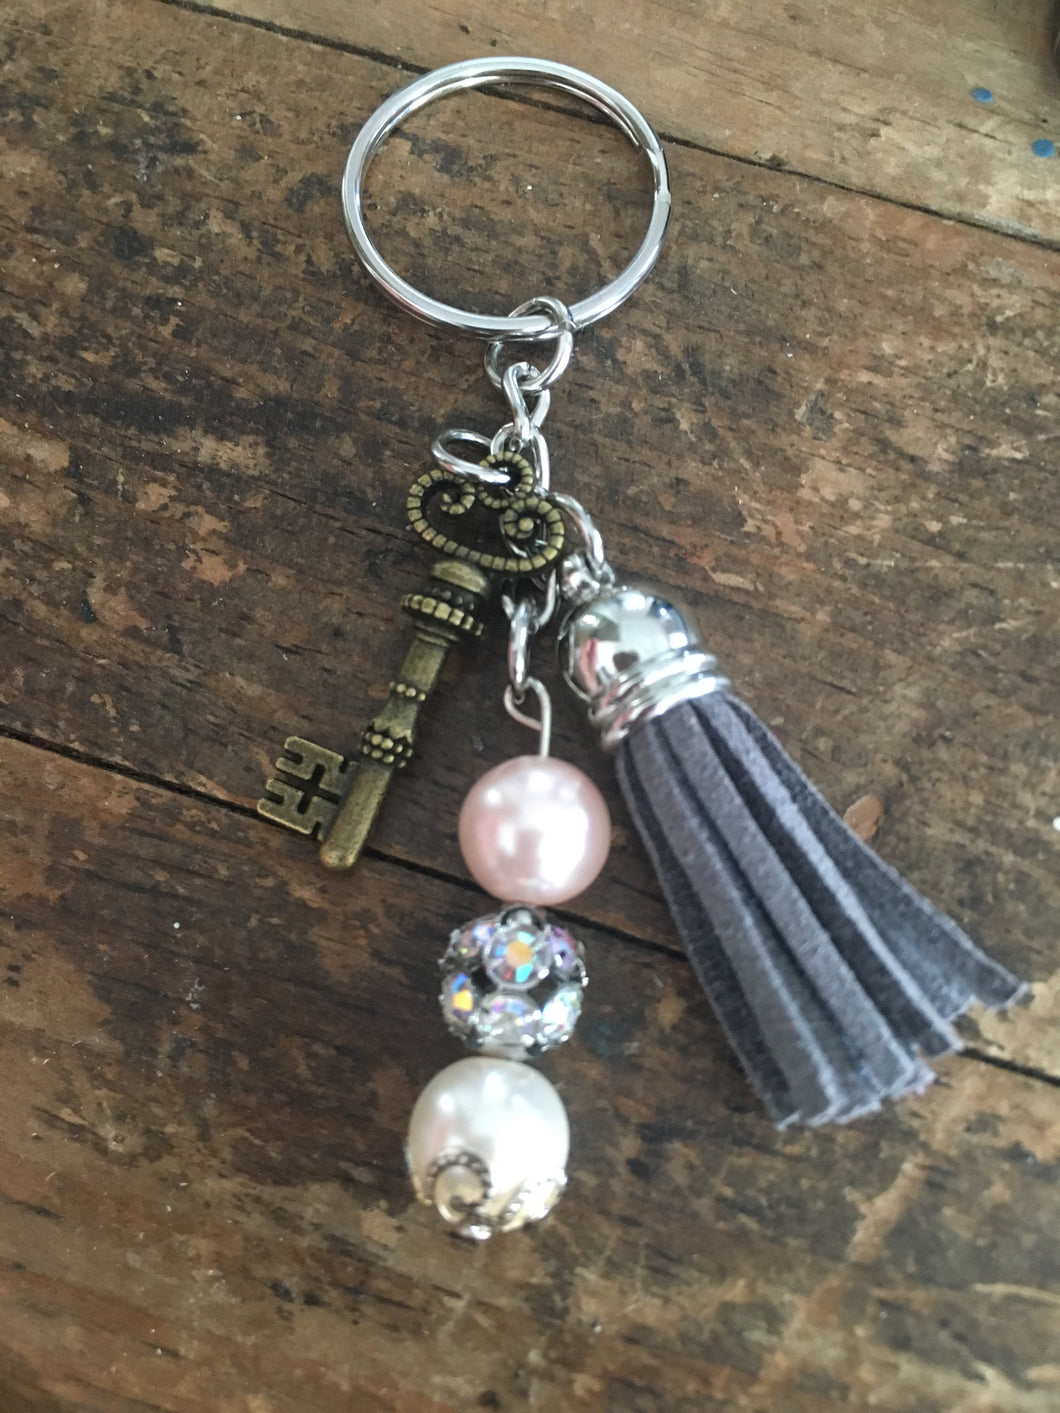 Keychain with Skeleton Key and Gray Tassel, Key Ring, Gifts for Her, Symbolic Key Charm for Success in Life & Love, Mixed Metal